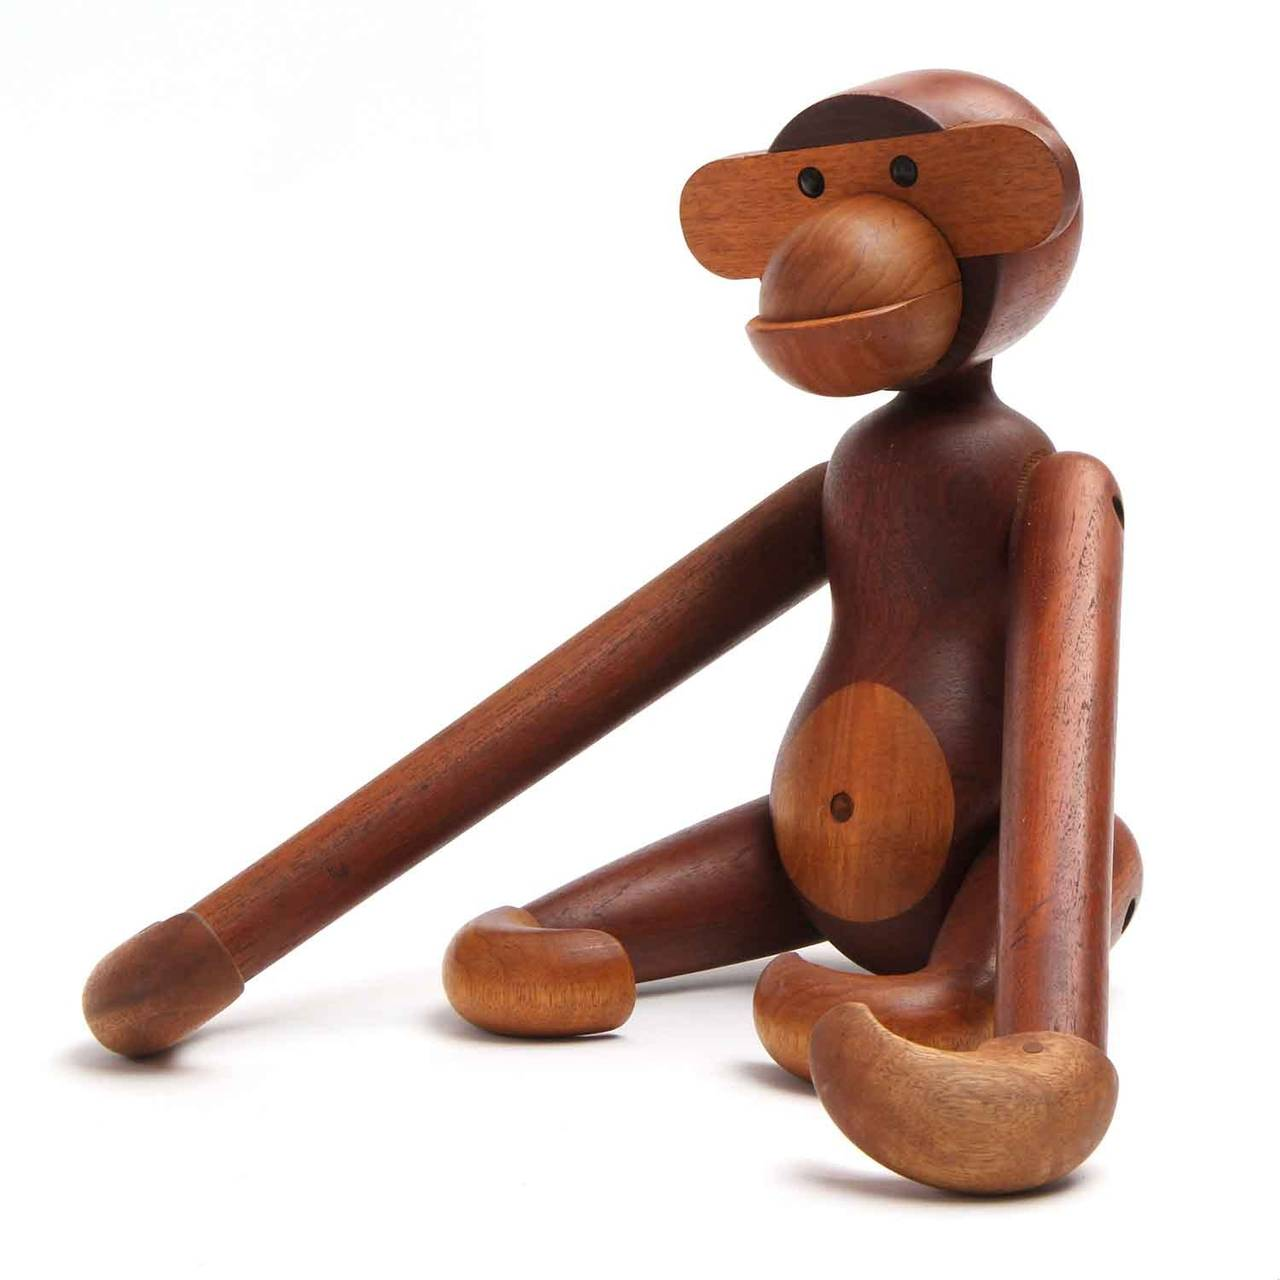 A delightfully expressive and beautifully crafted monkey made of teak and limba. This uncommon example is the largest size that was produced for the public.